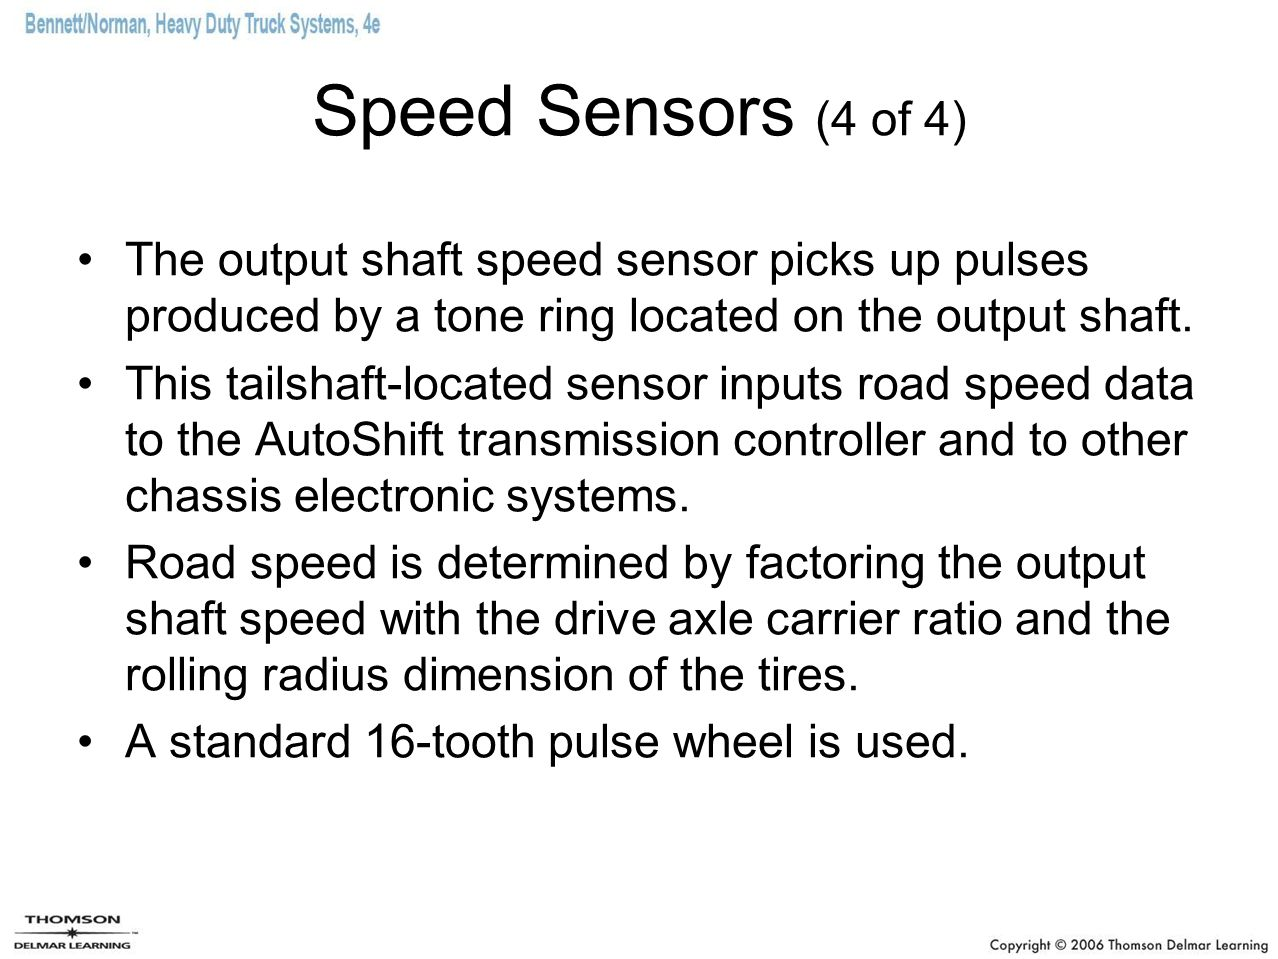 Speed Sensors (4 of 4) The output shaft speed sensor picks up pulses produced by a tone ring located on the output shaft.